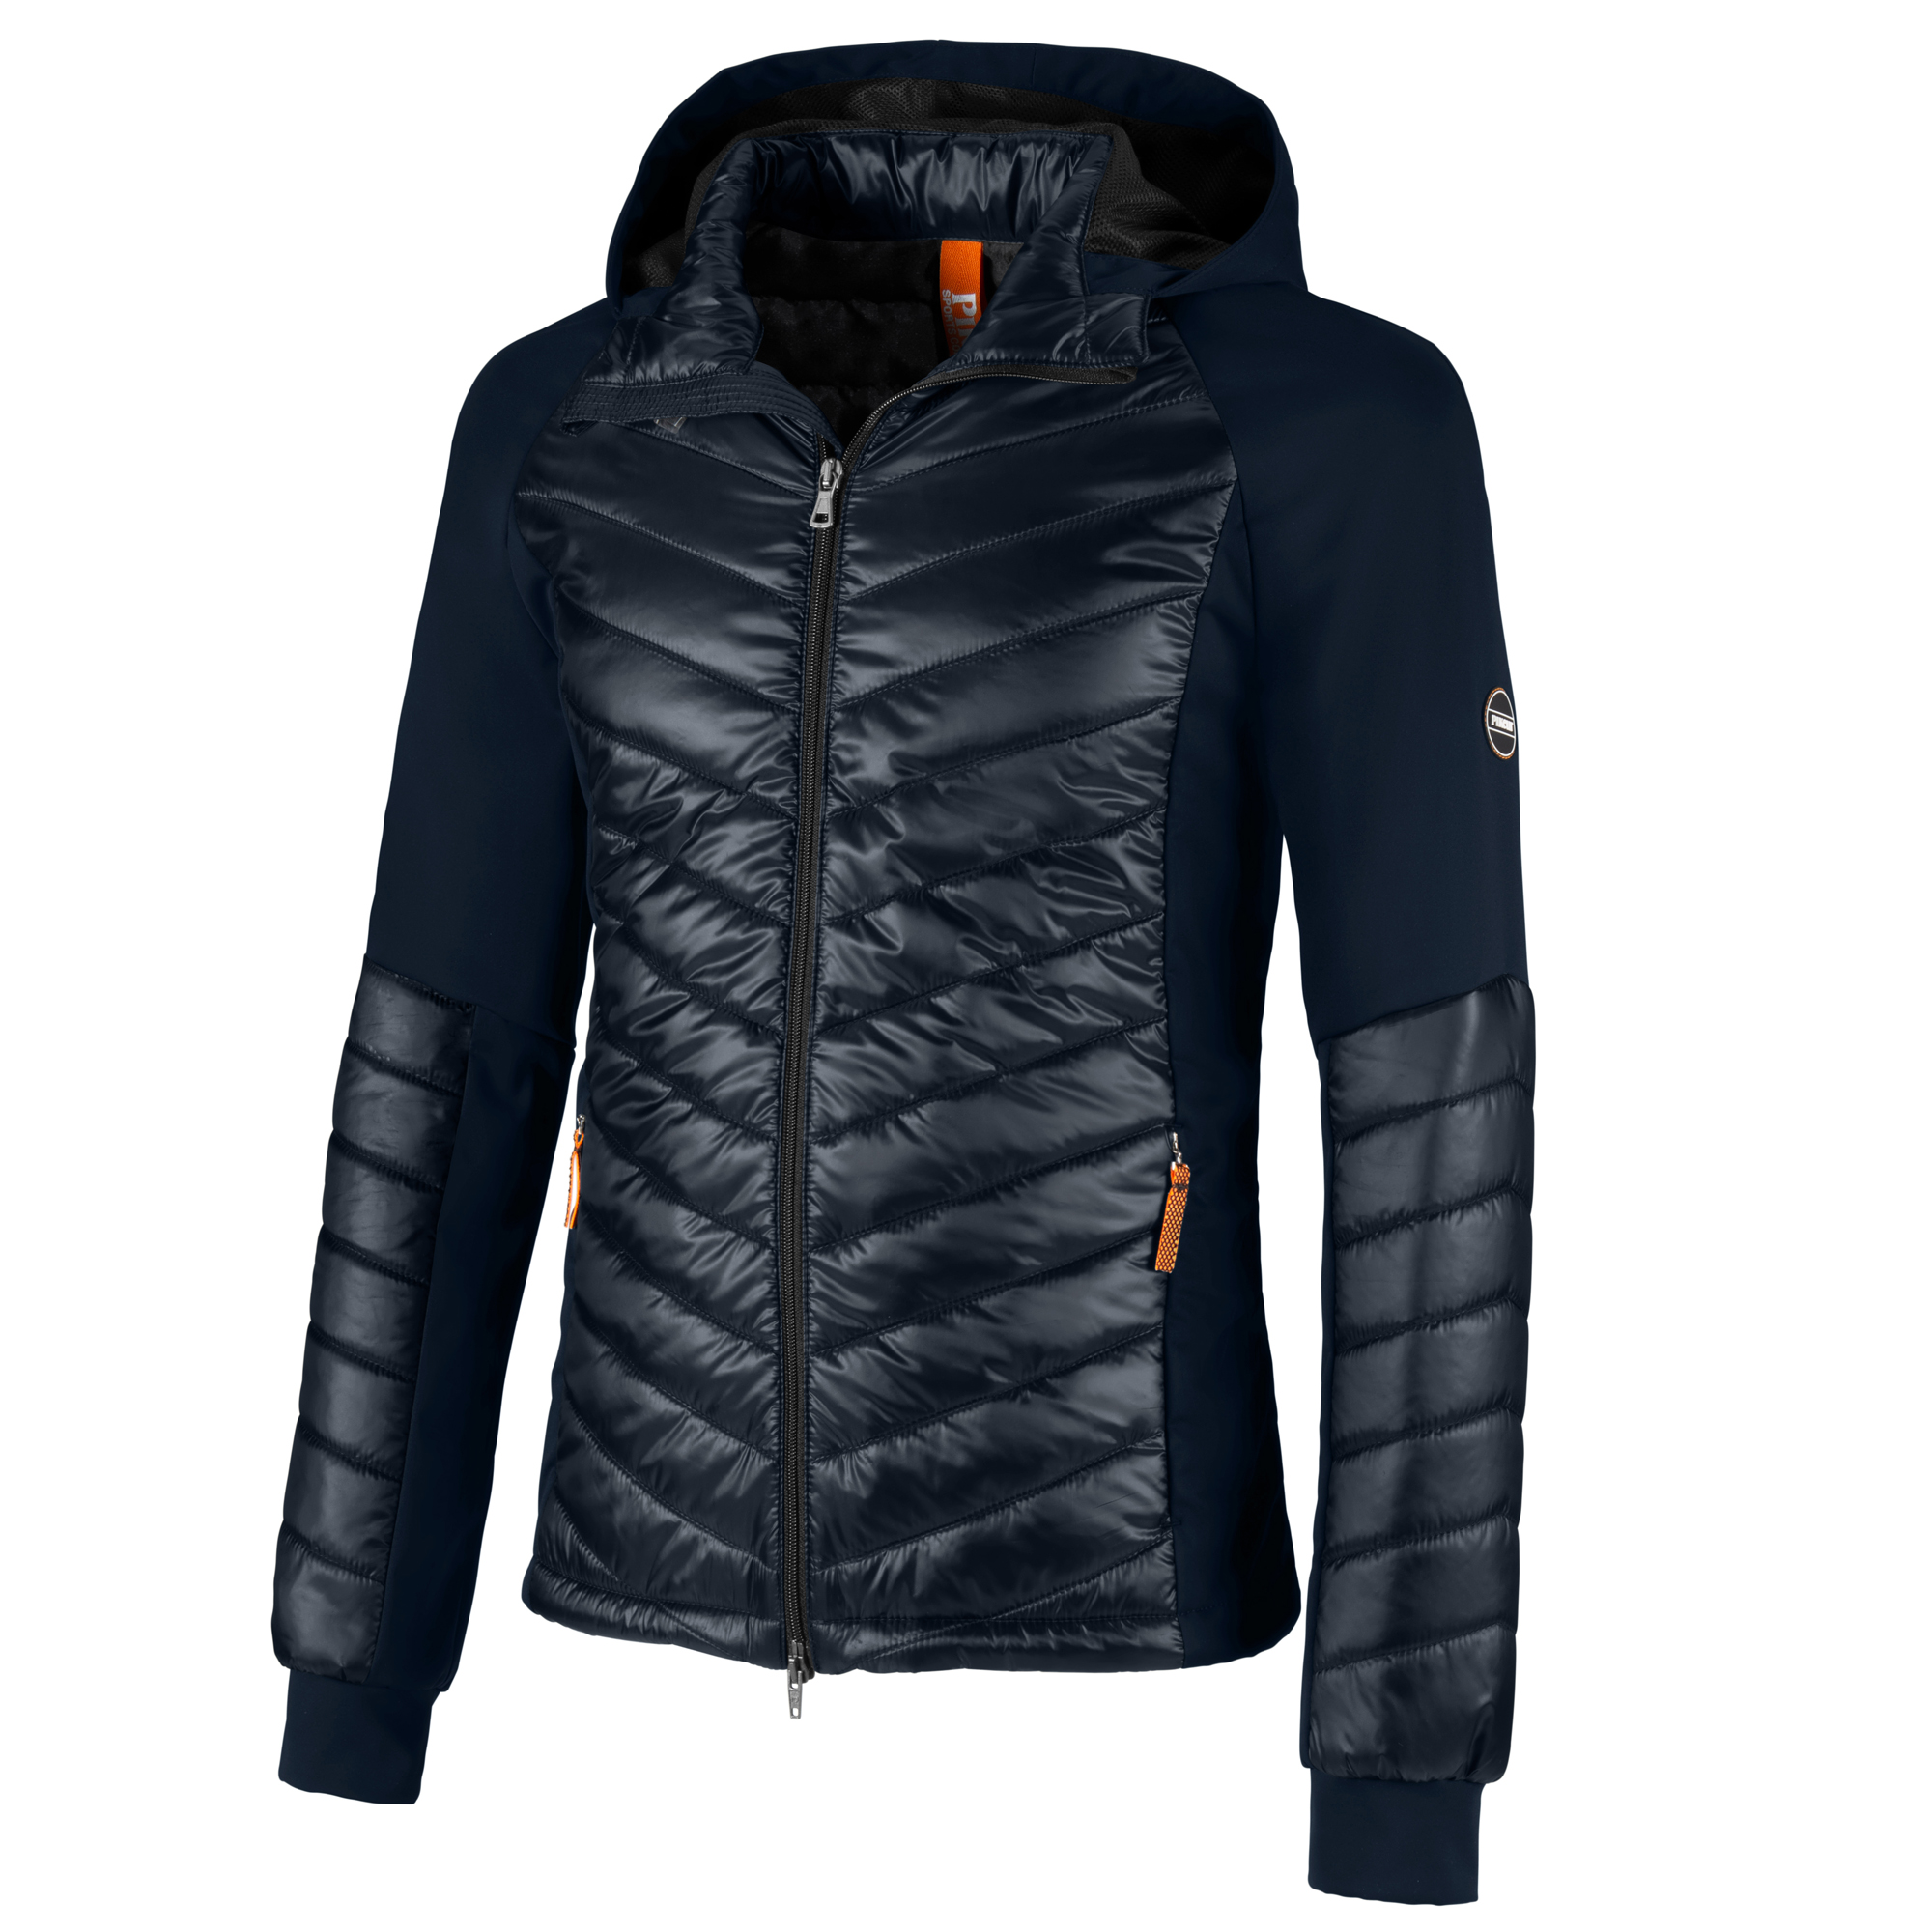 Pikeur Herren Materialmix-Jacke AVELINO in night sky